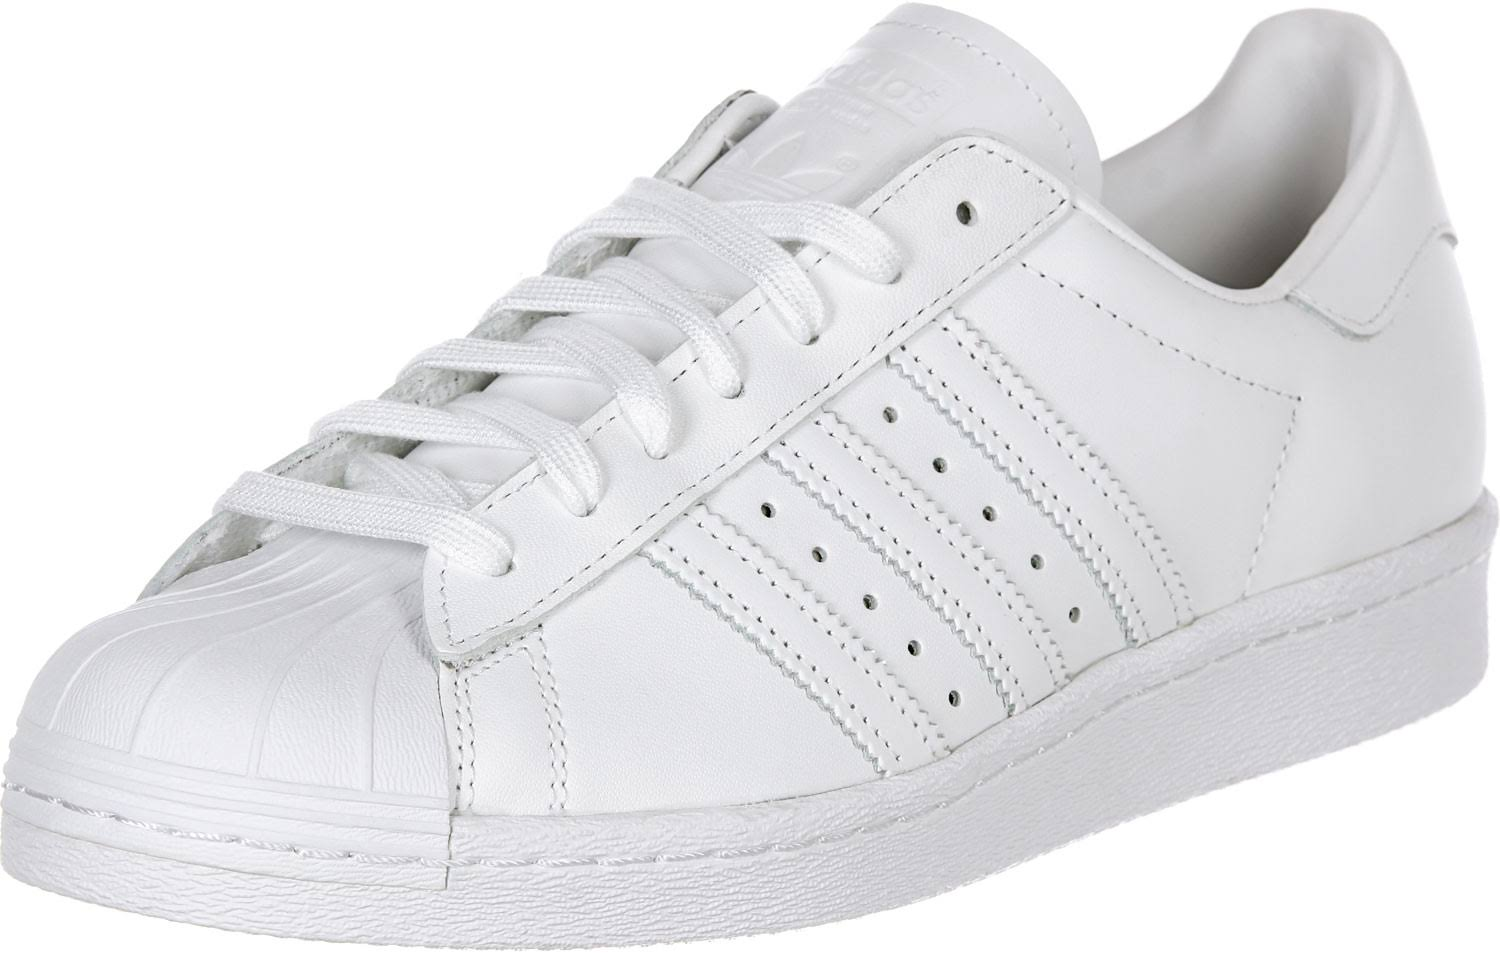 36 Leder White core Black footwear White Schuh '80s Superstar Black Elfenbein Adidas footwear Ixw0YY